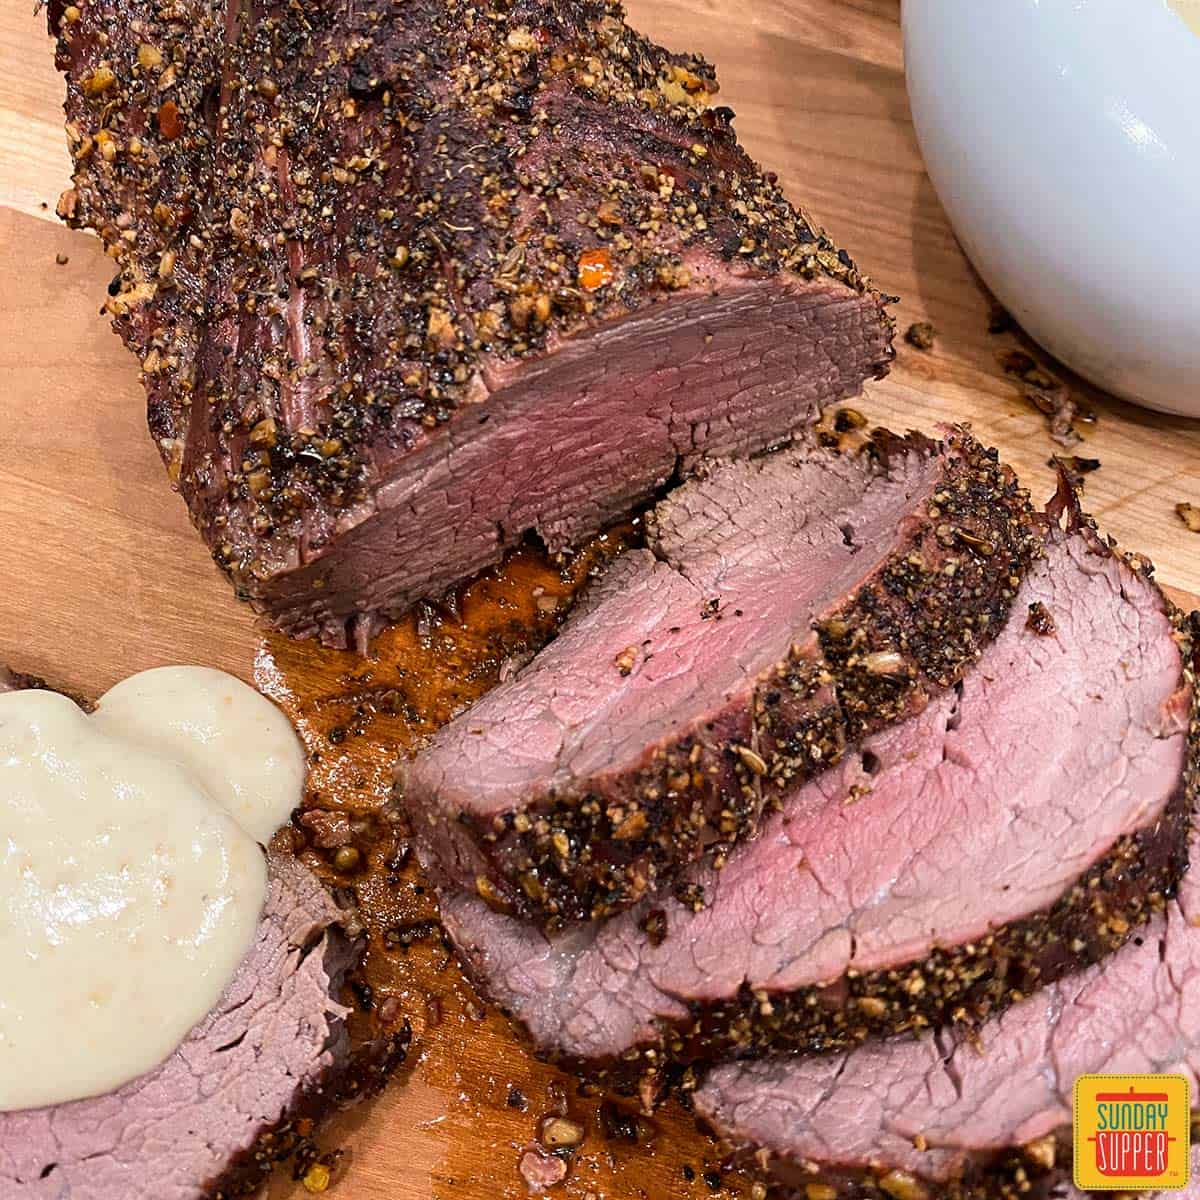 Grilled beef tenderloin cut into slices on a cutting board